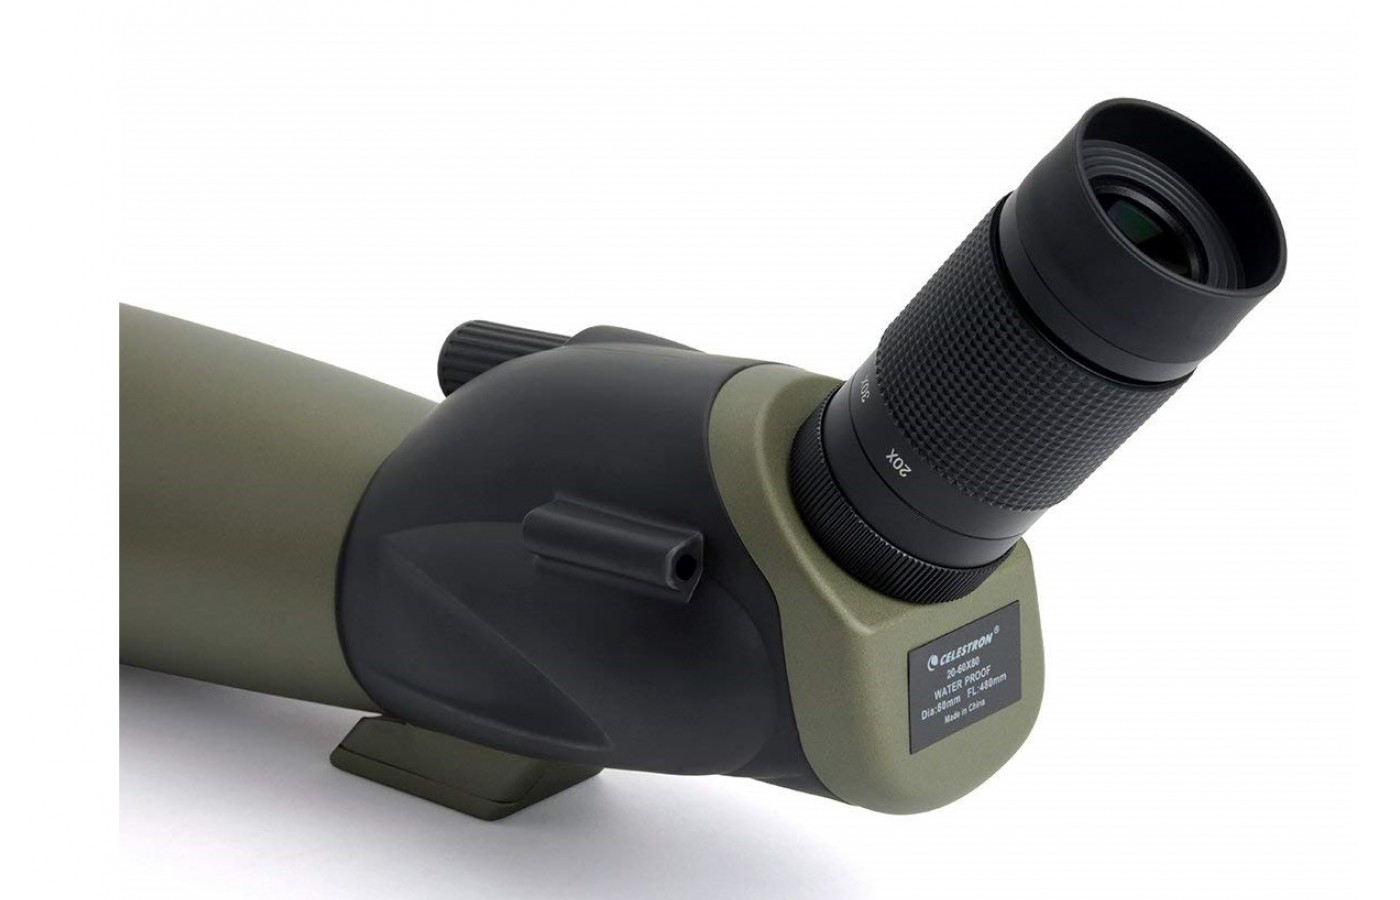 The Celestron Ultima 80 offers a sight tub for quick targeting.